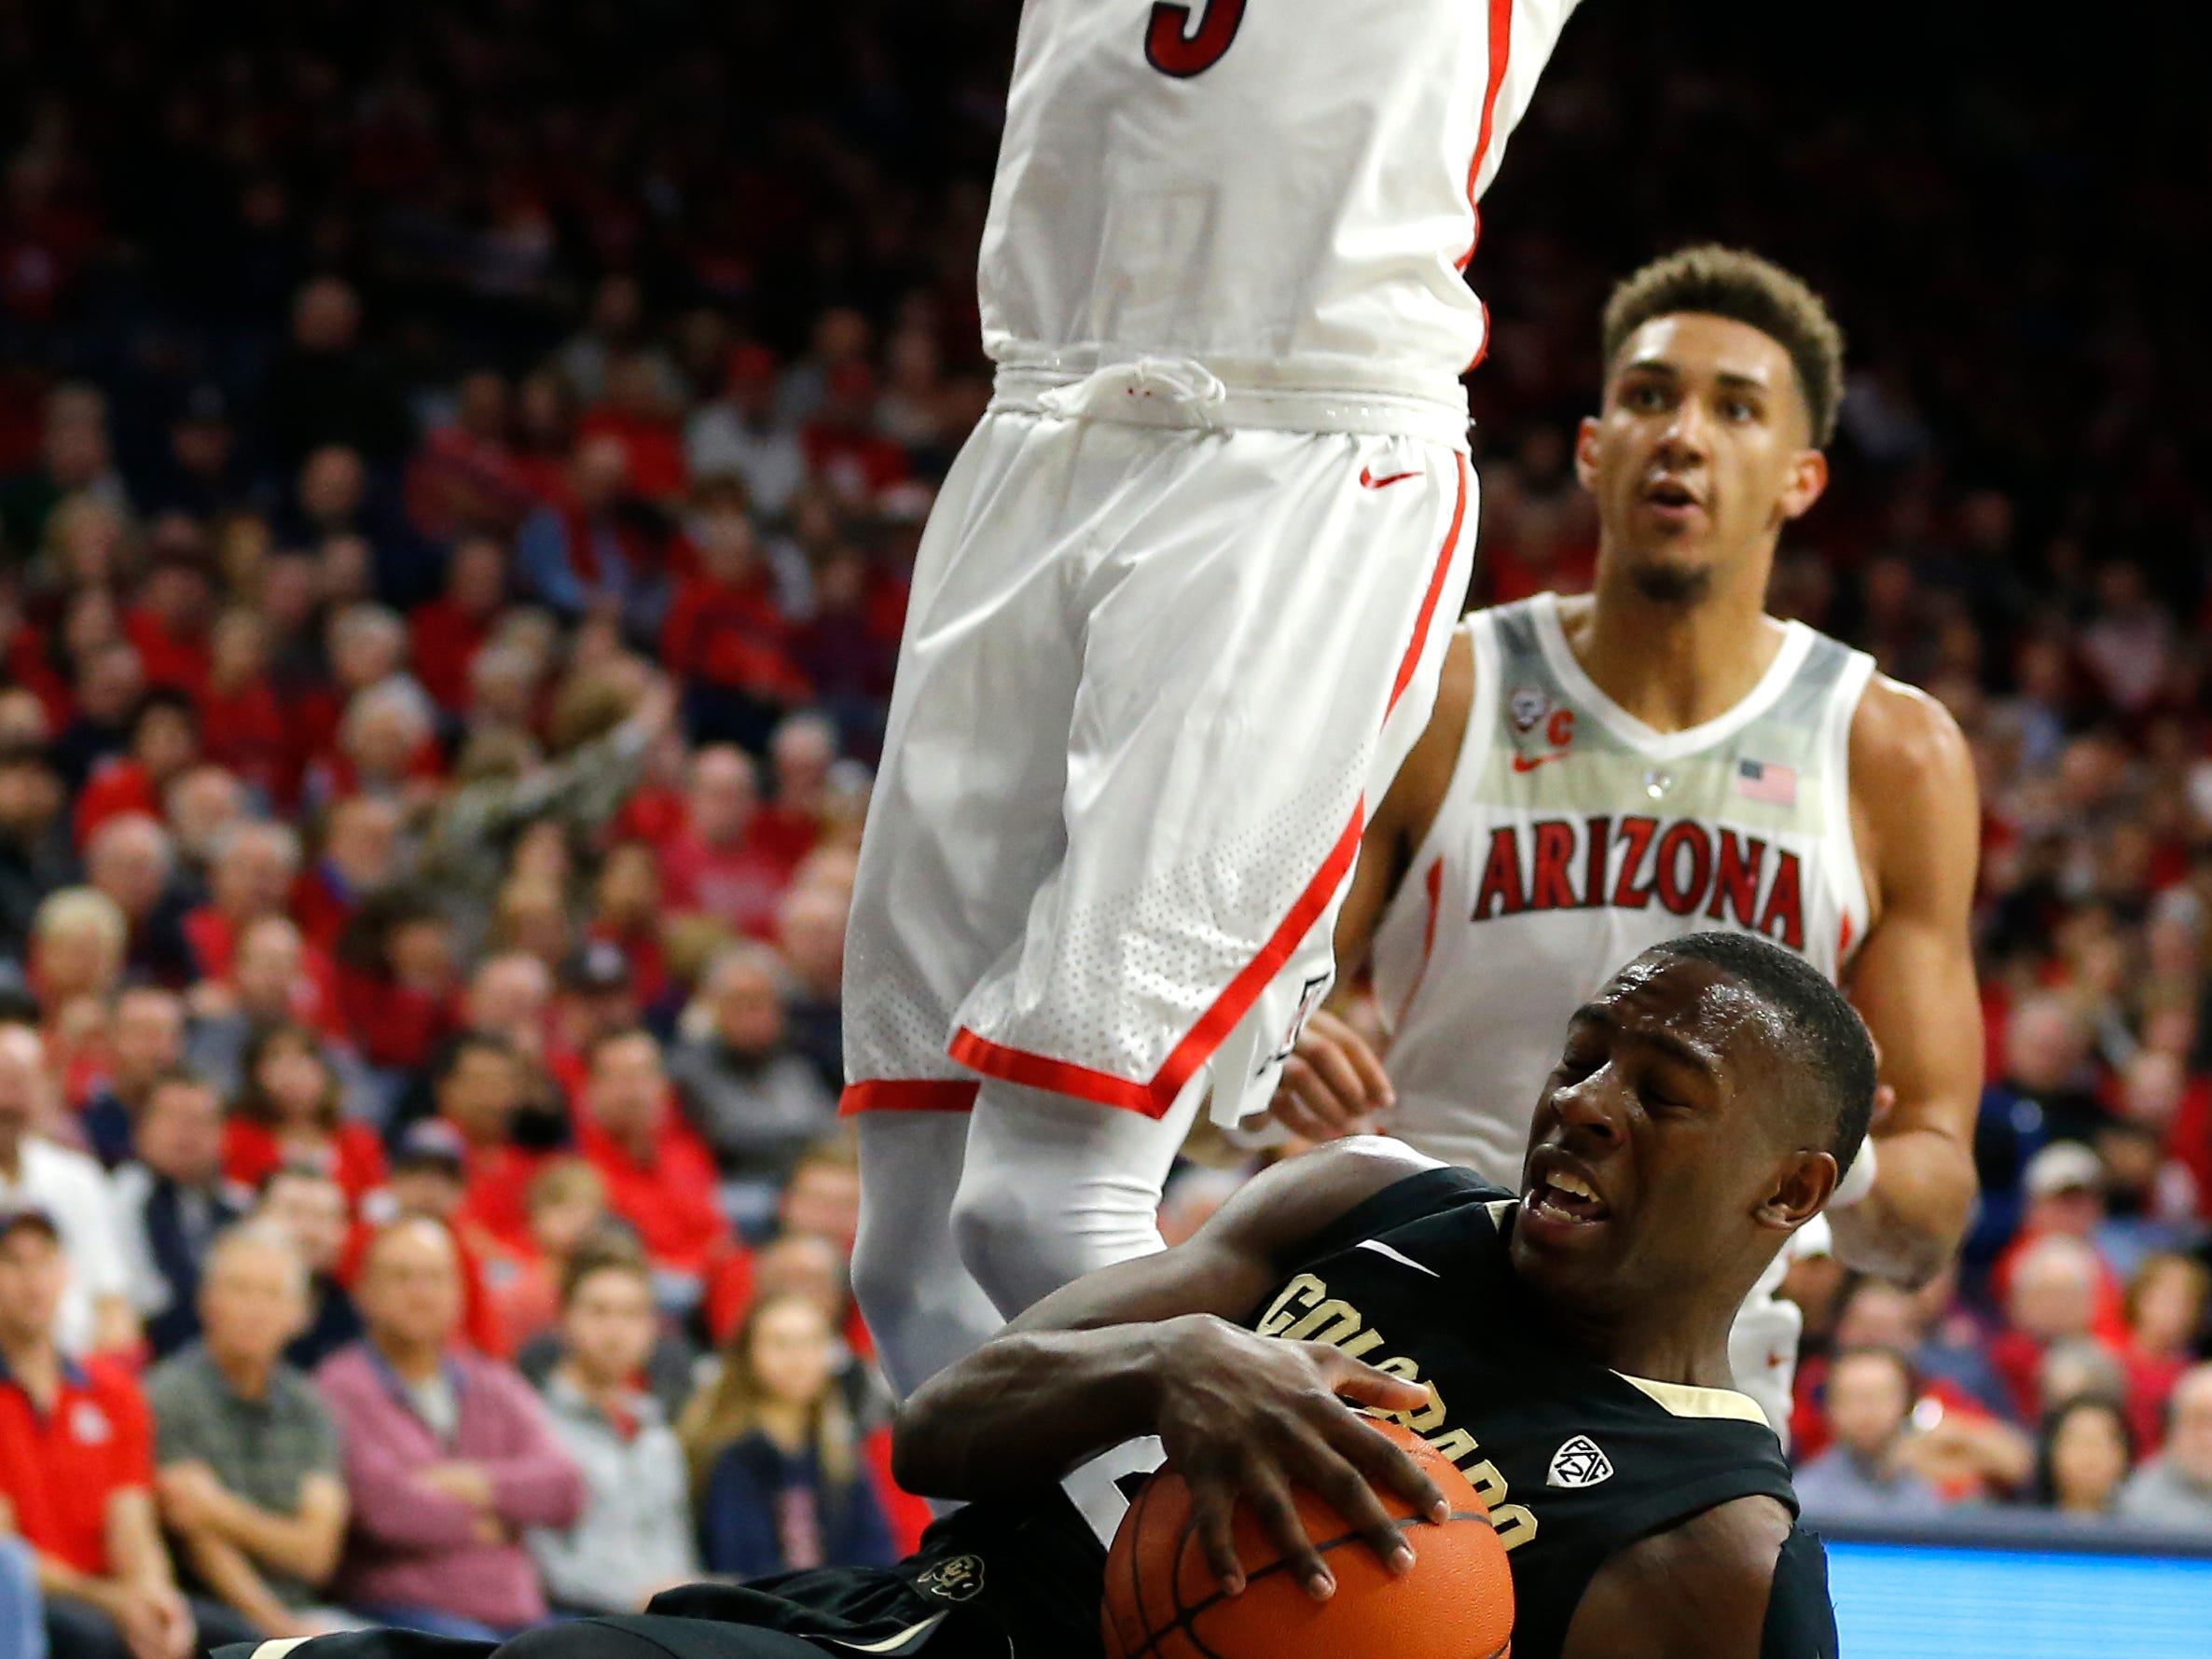 Colorado guard McKinley Wright IV (25) in the first half during an NCAA college basketball game against Arizona, Thursday, Jan. 3, 2019, in Tucson, Ariz. (AP Photo/Rick Scuteri)